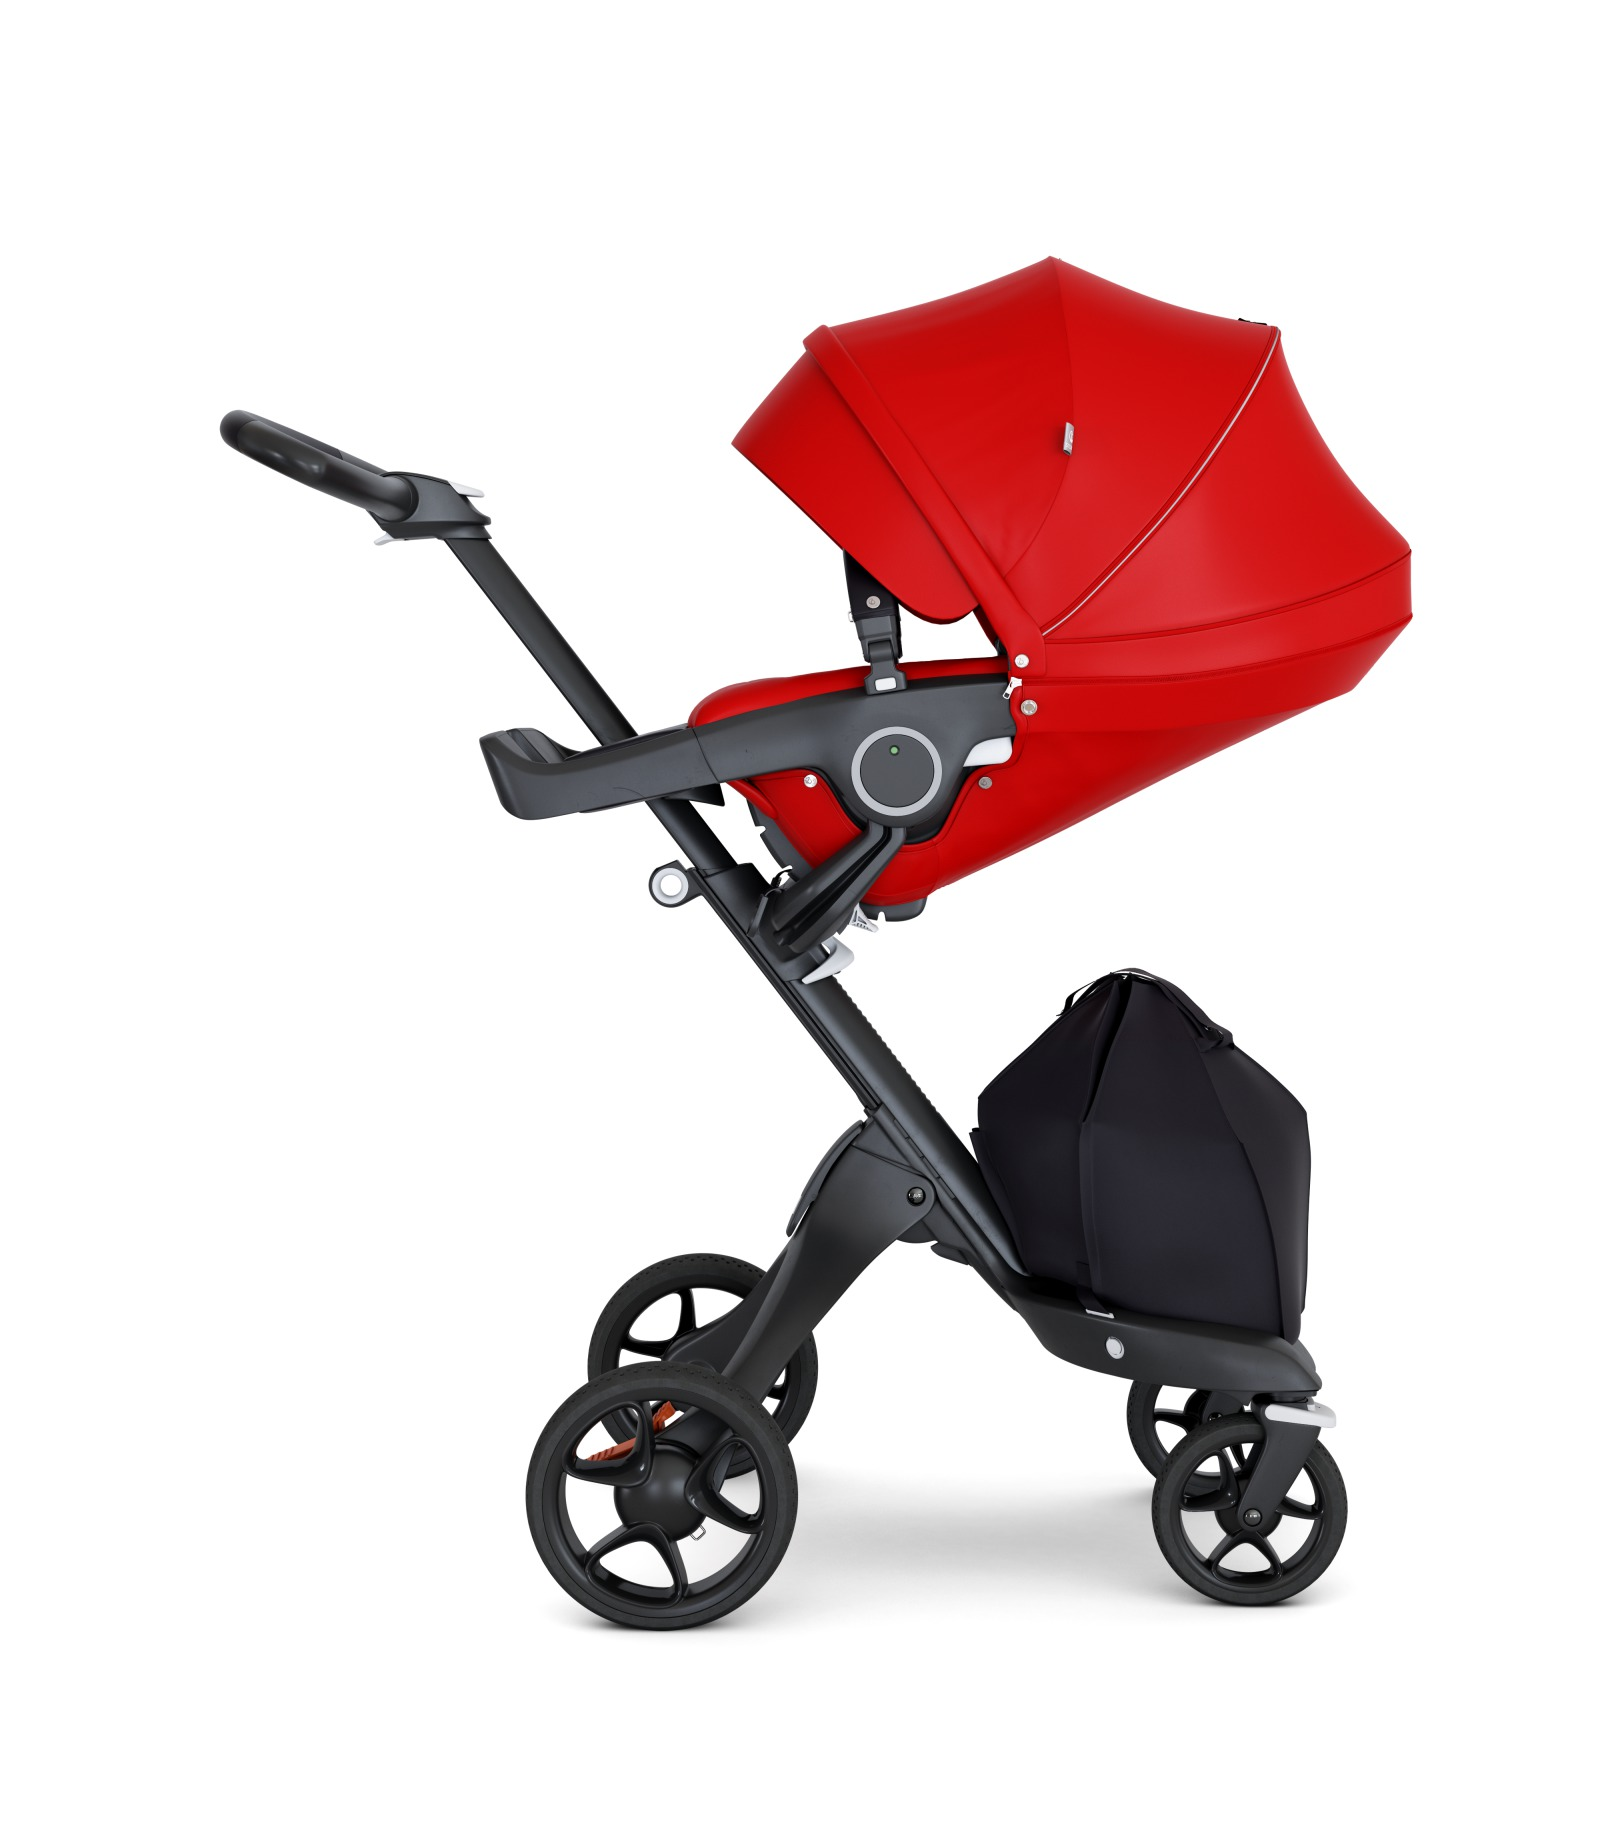 Stokke® Xplory® with Black Chassis and Leatherette Black handle. Stokke® Stroller Seat Red with extended canopy.